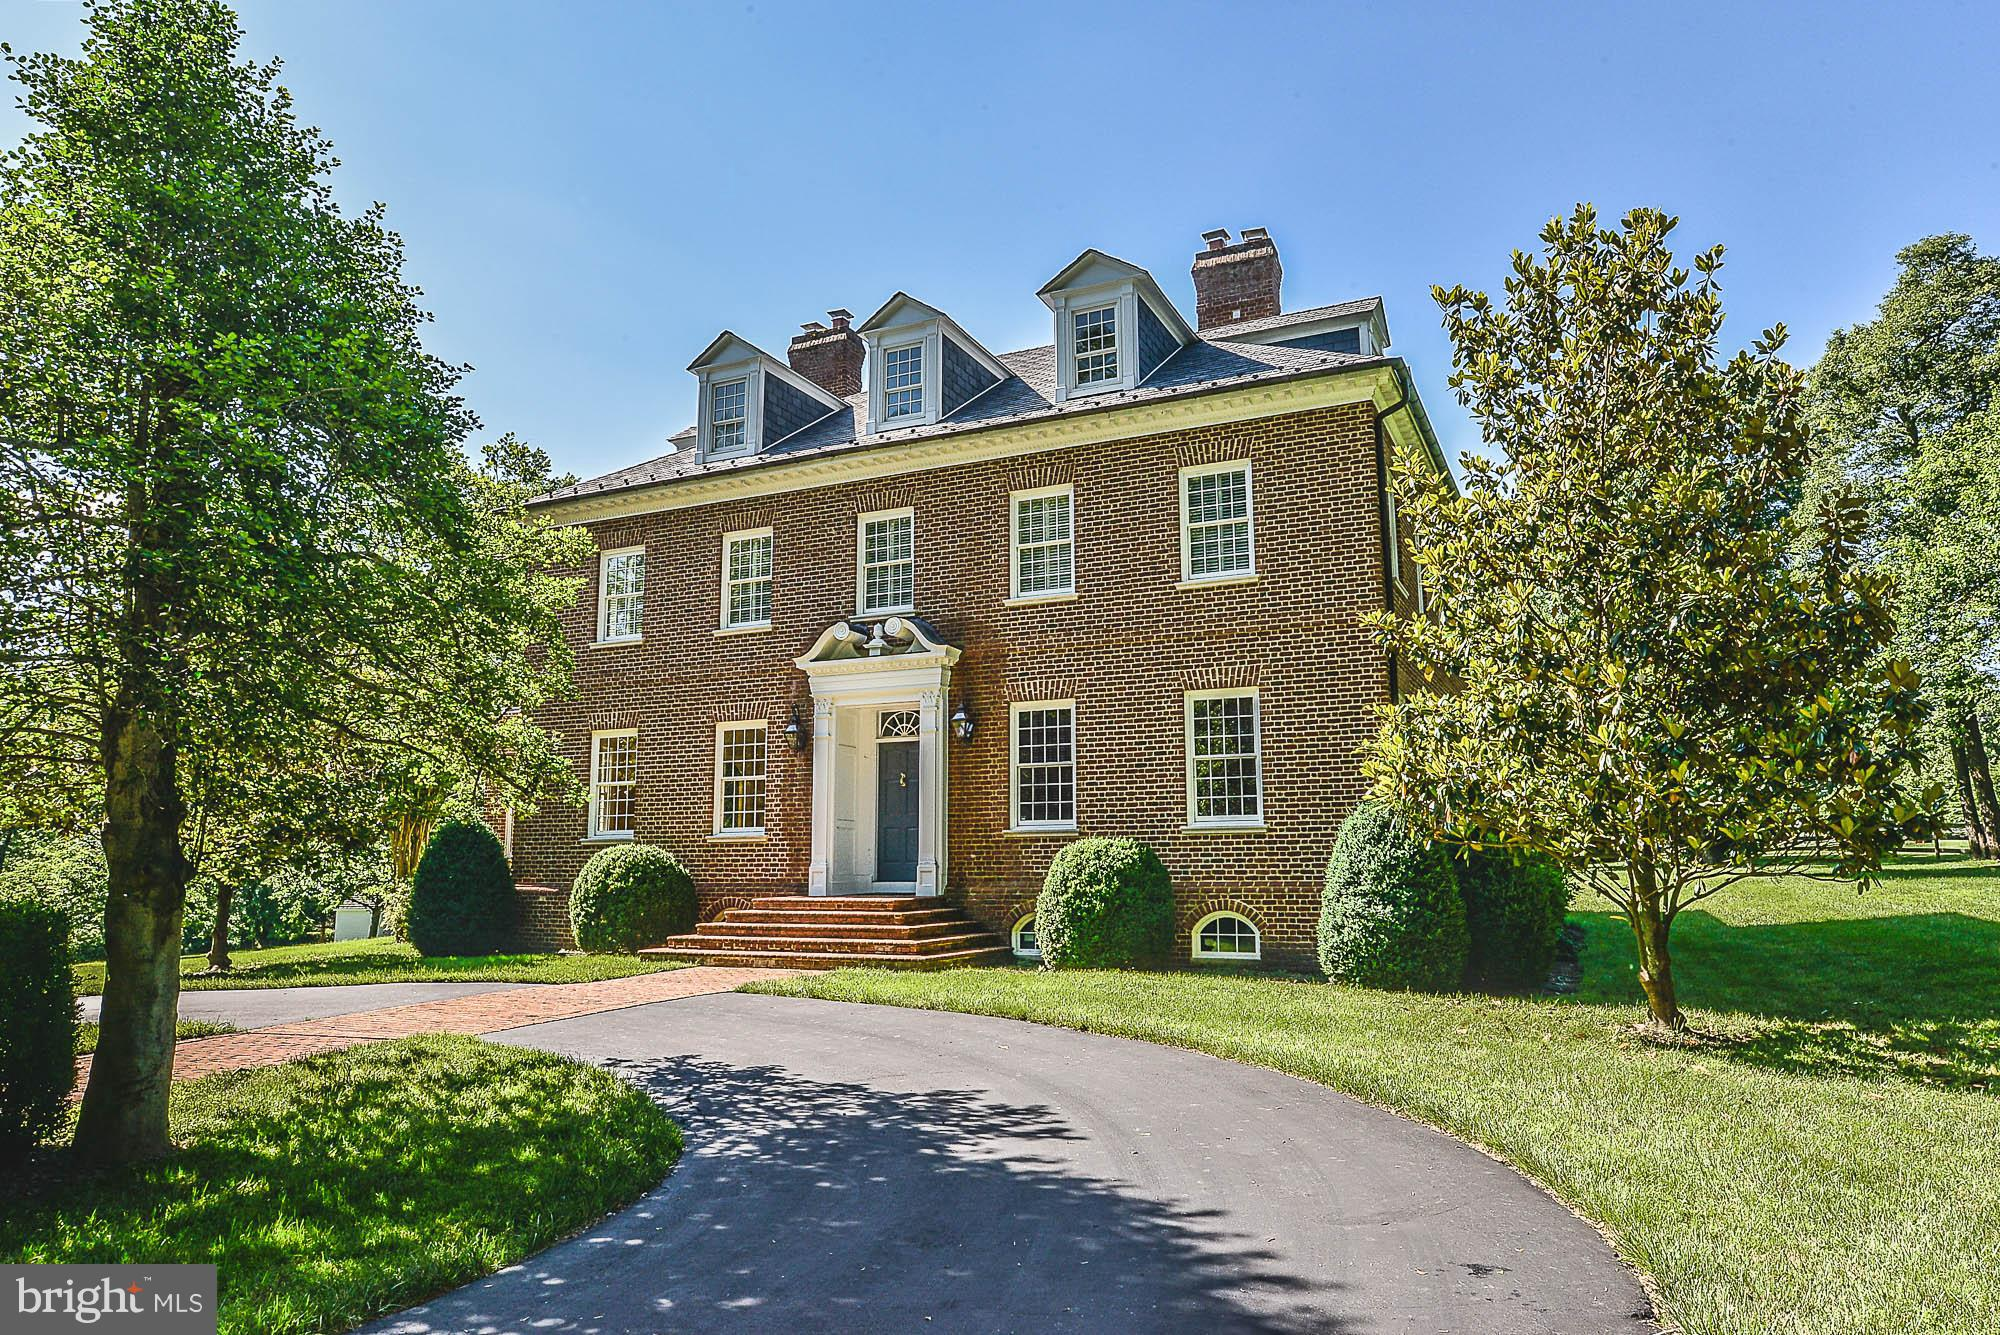 Custom elegance abounds in this authentic Williamsburg-style estate. 5 bedrooms, 4.5 baths, and over